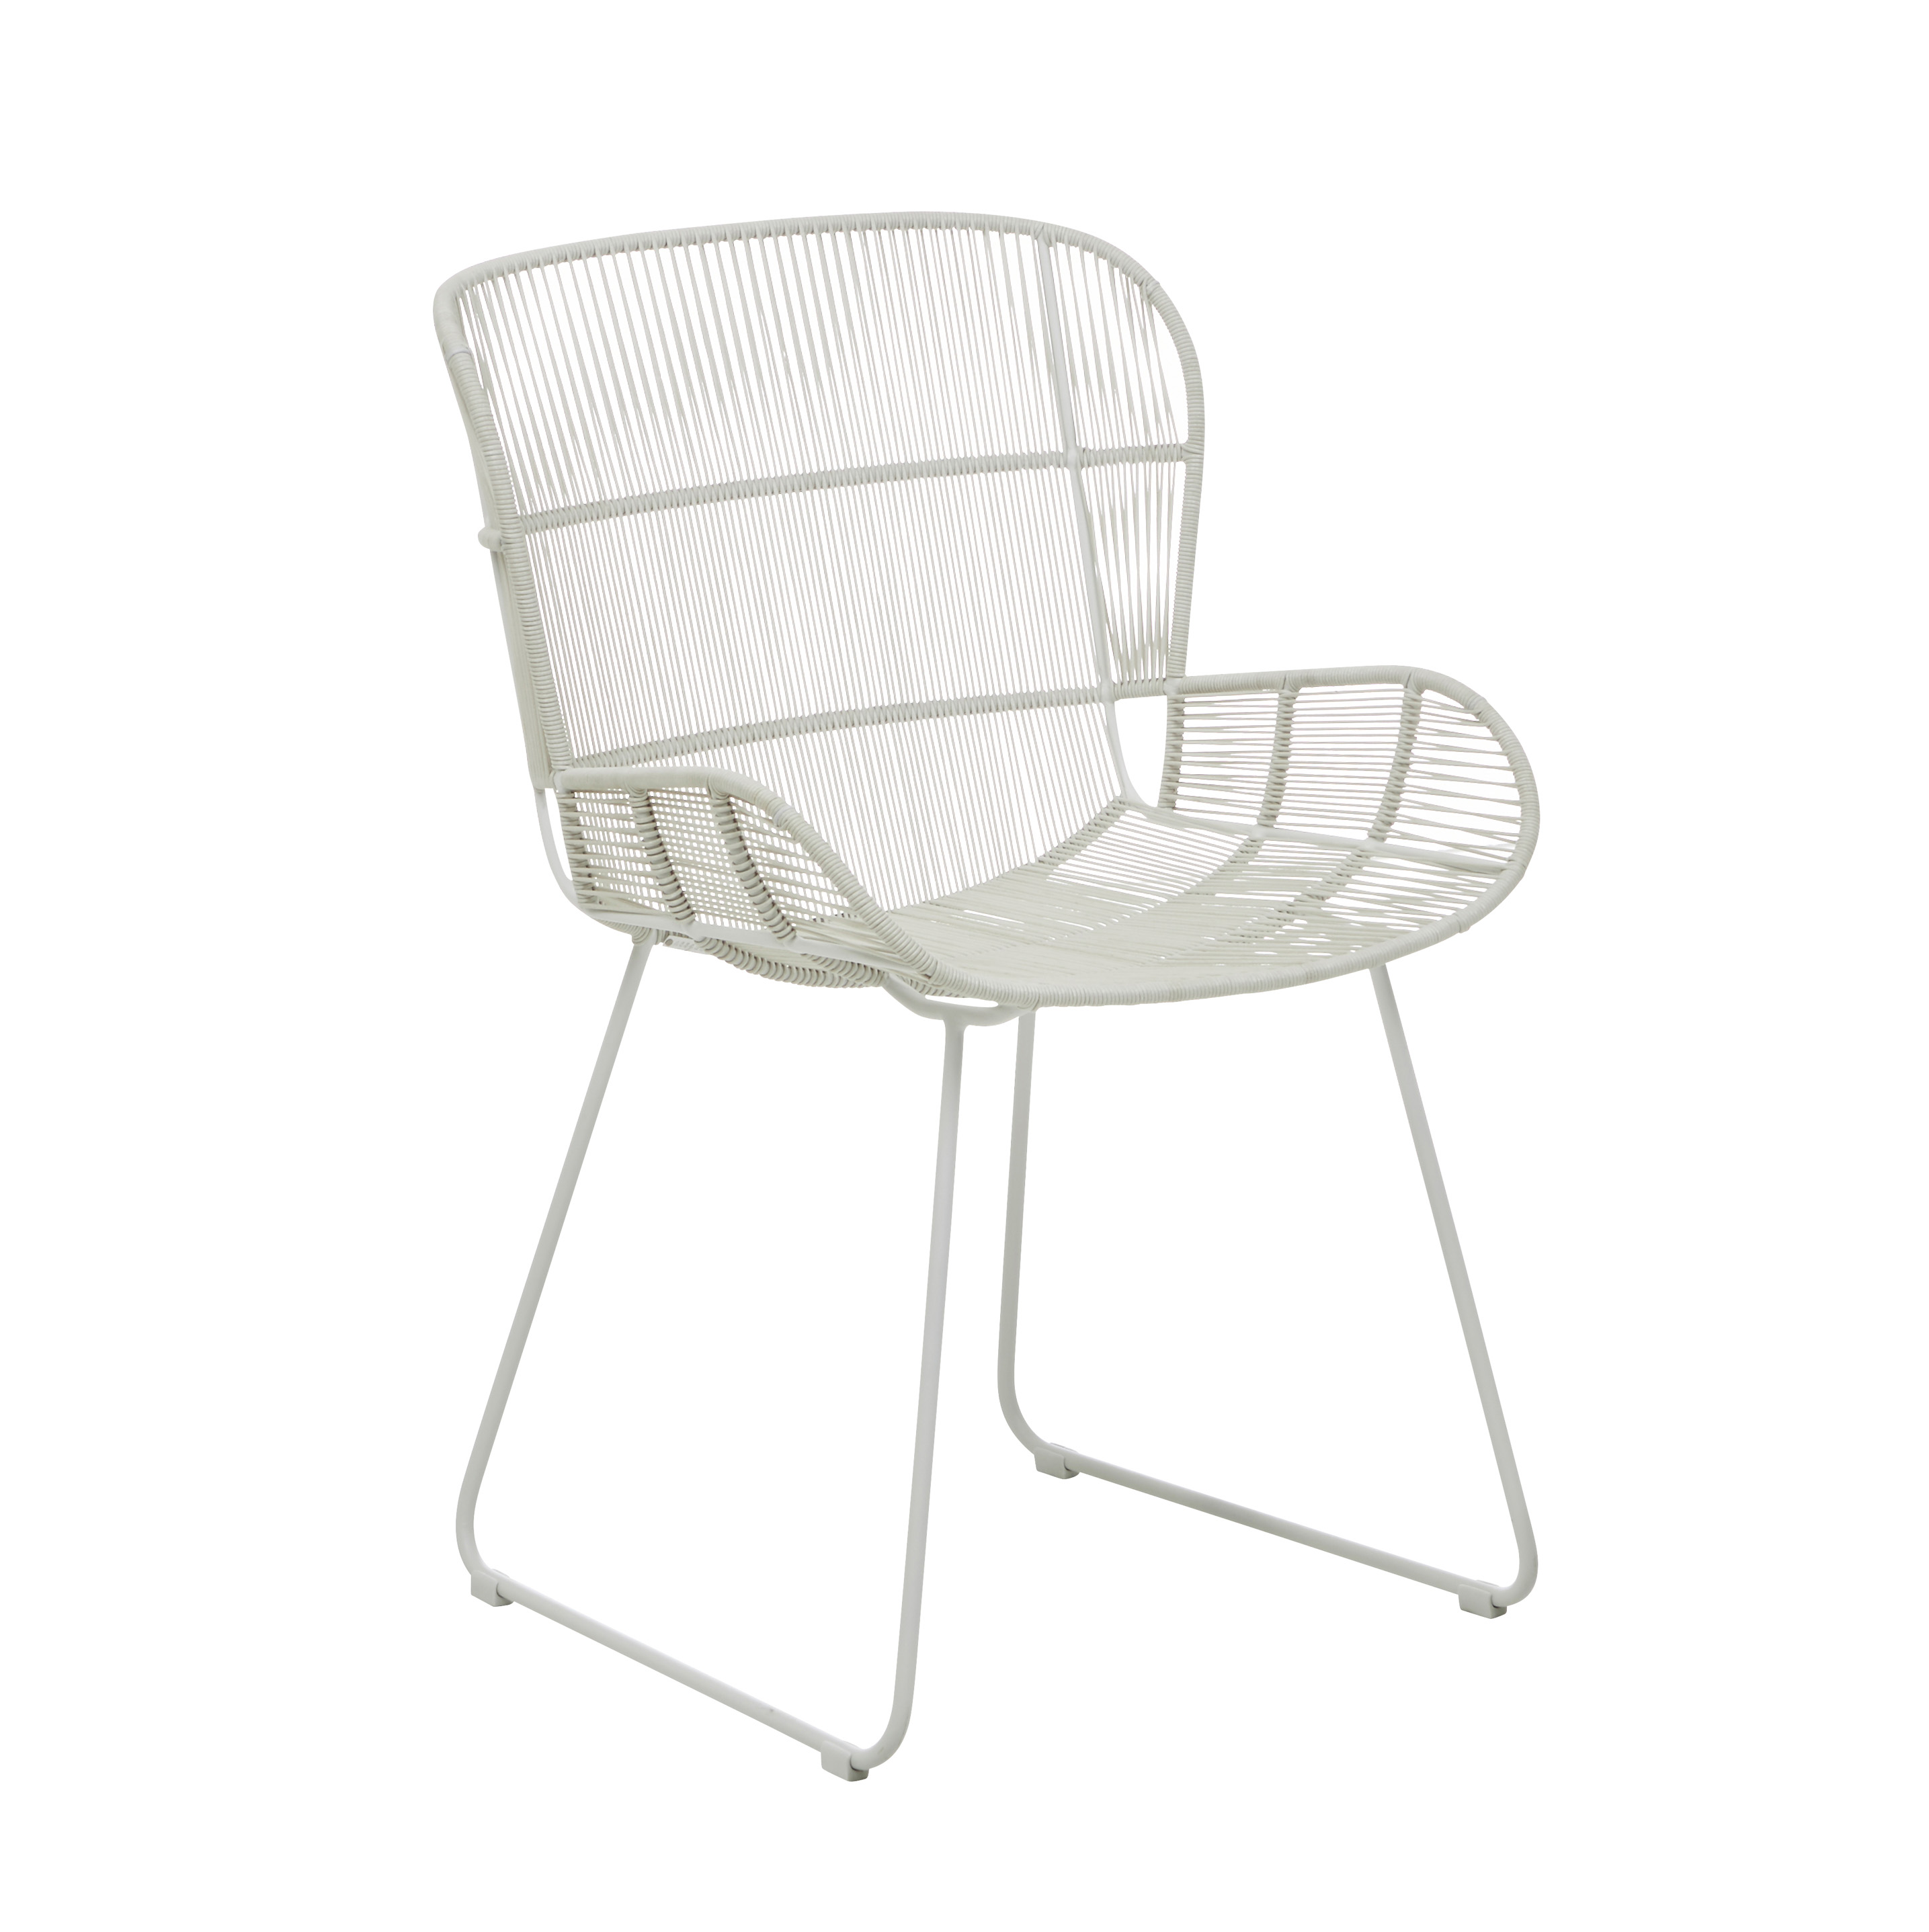 Furniture Hero-Images Dining-Chairs-Benches-and-Stools granada-butterfly-03